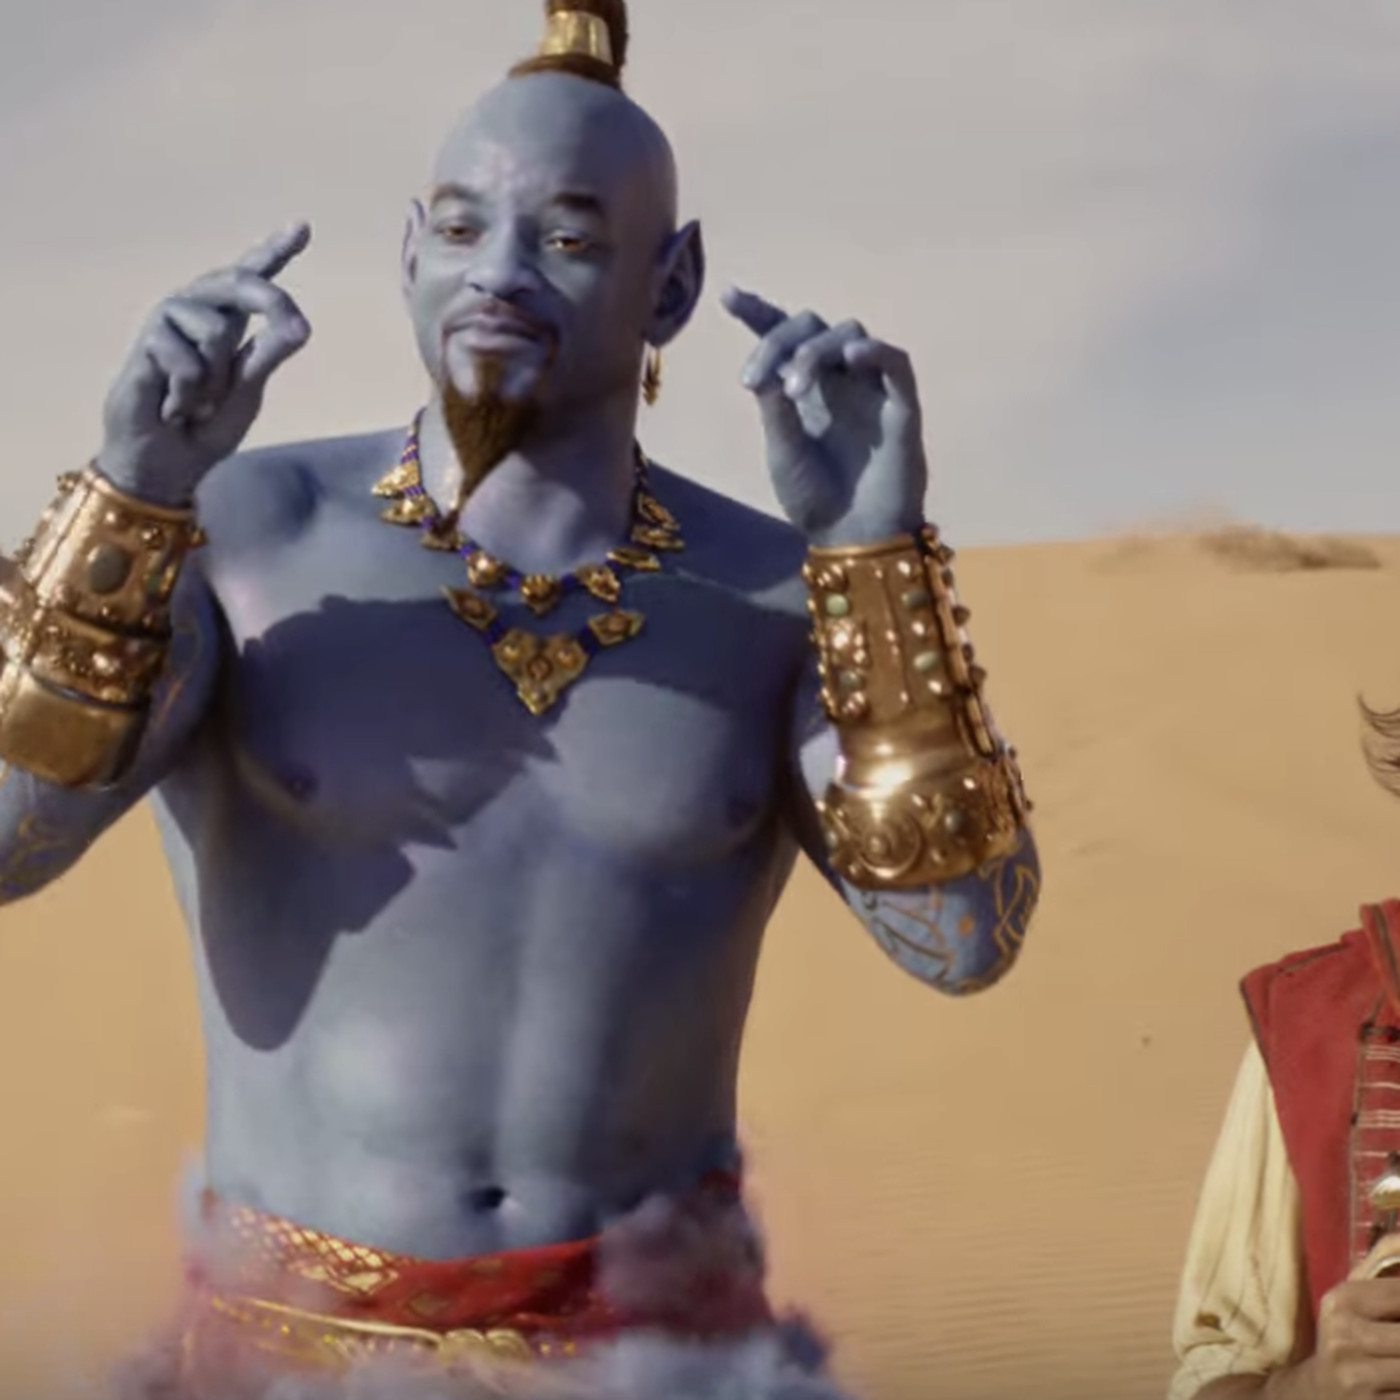 Aladdin's newest trailer proves Genie is more than a meme